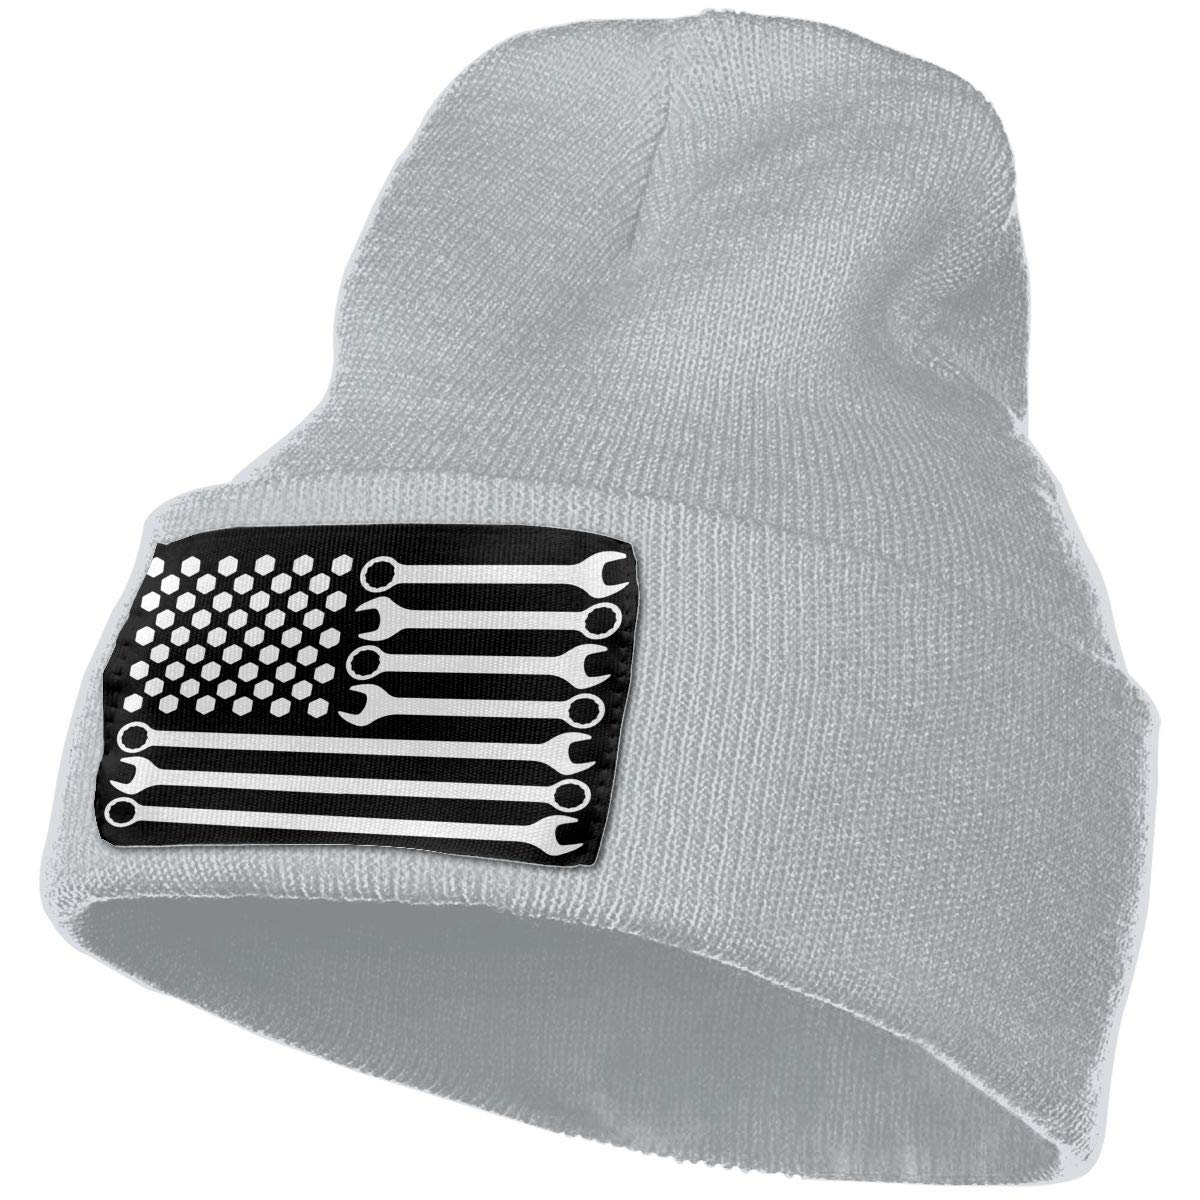 COLLJL-8 Unisex Mechanic DIY Wrench American Flag Outdoor Stretch Knit Beanies Hat Soft Winter Skull Caps